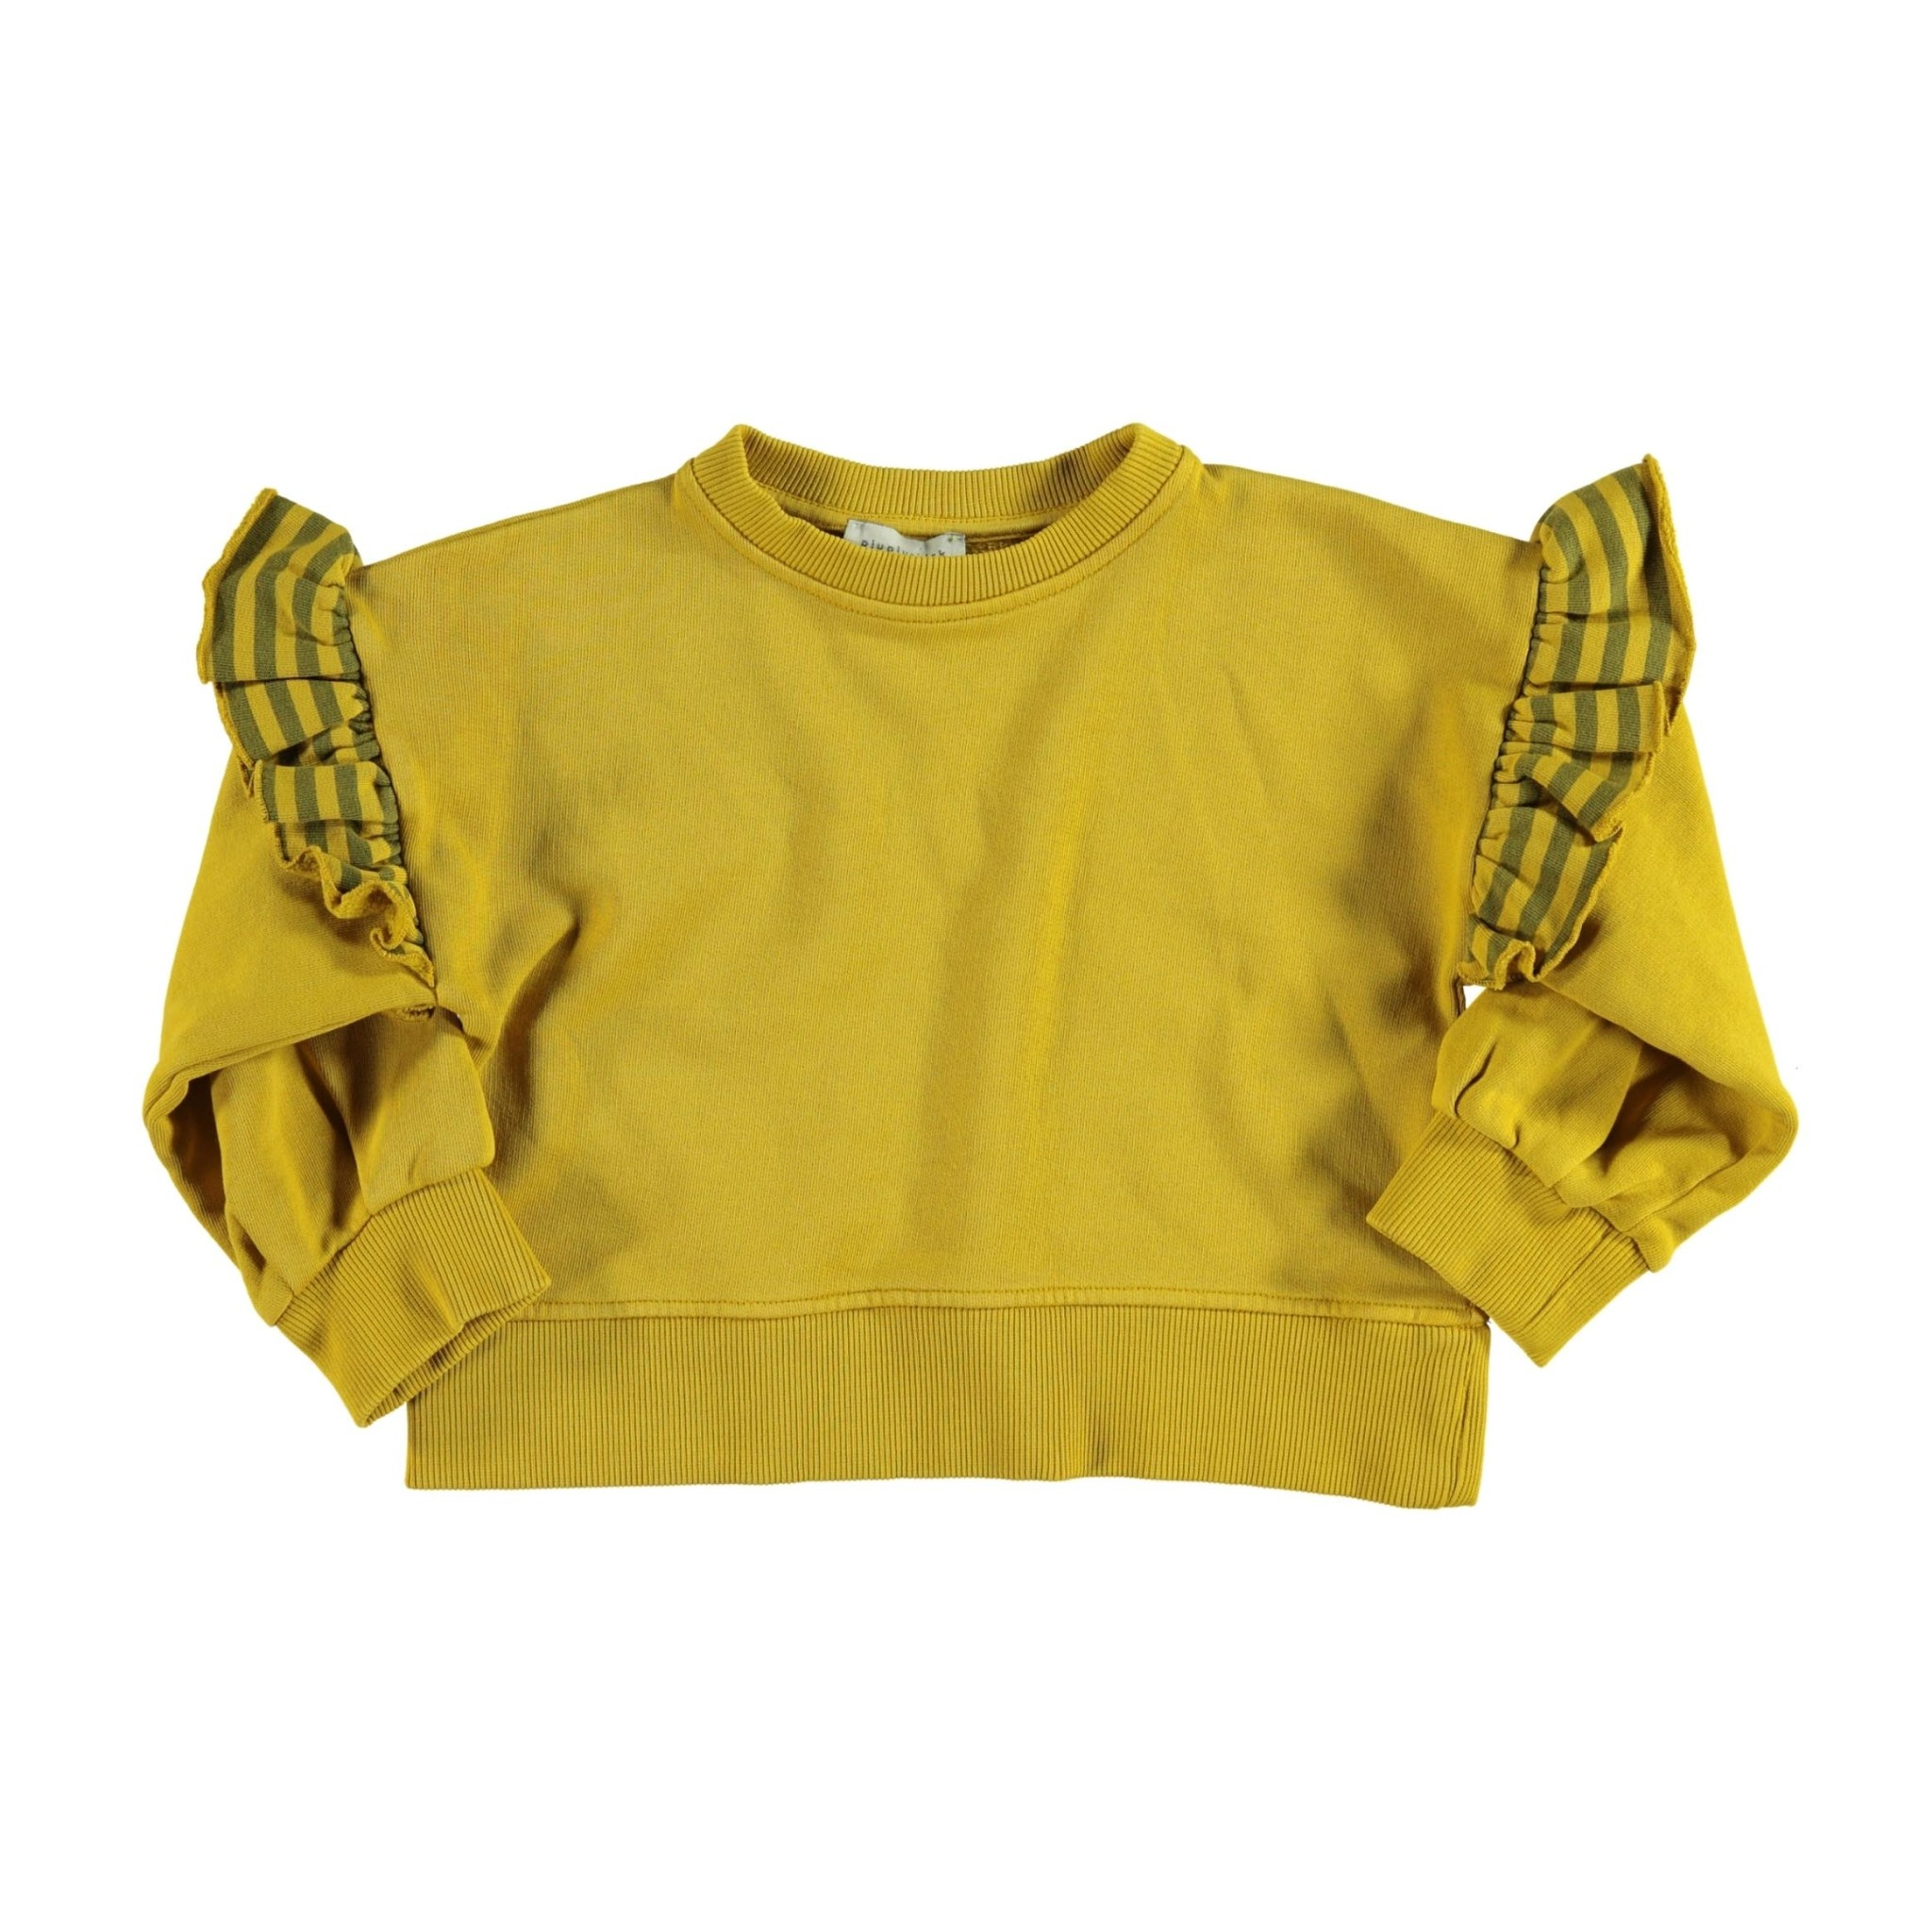 piupiuchick Sweatshirt with frills on shoulders | mustard